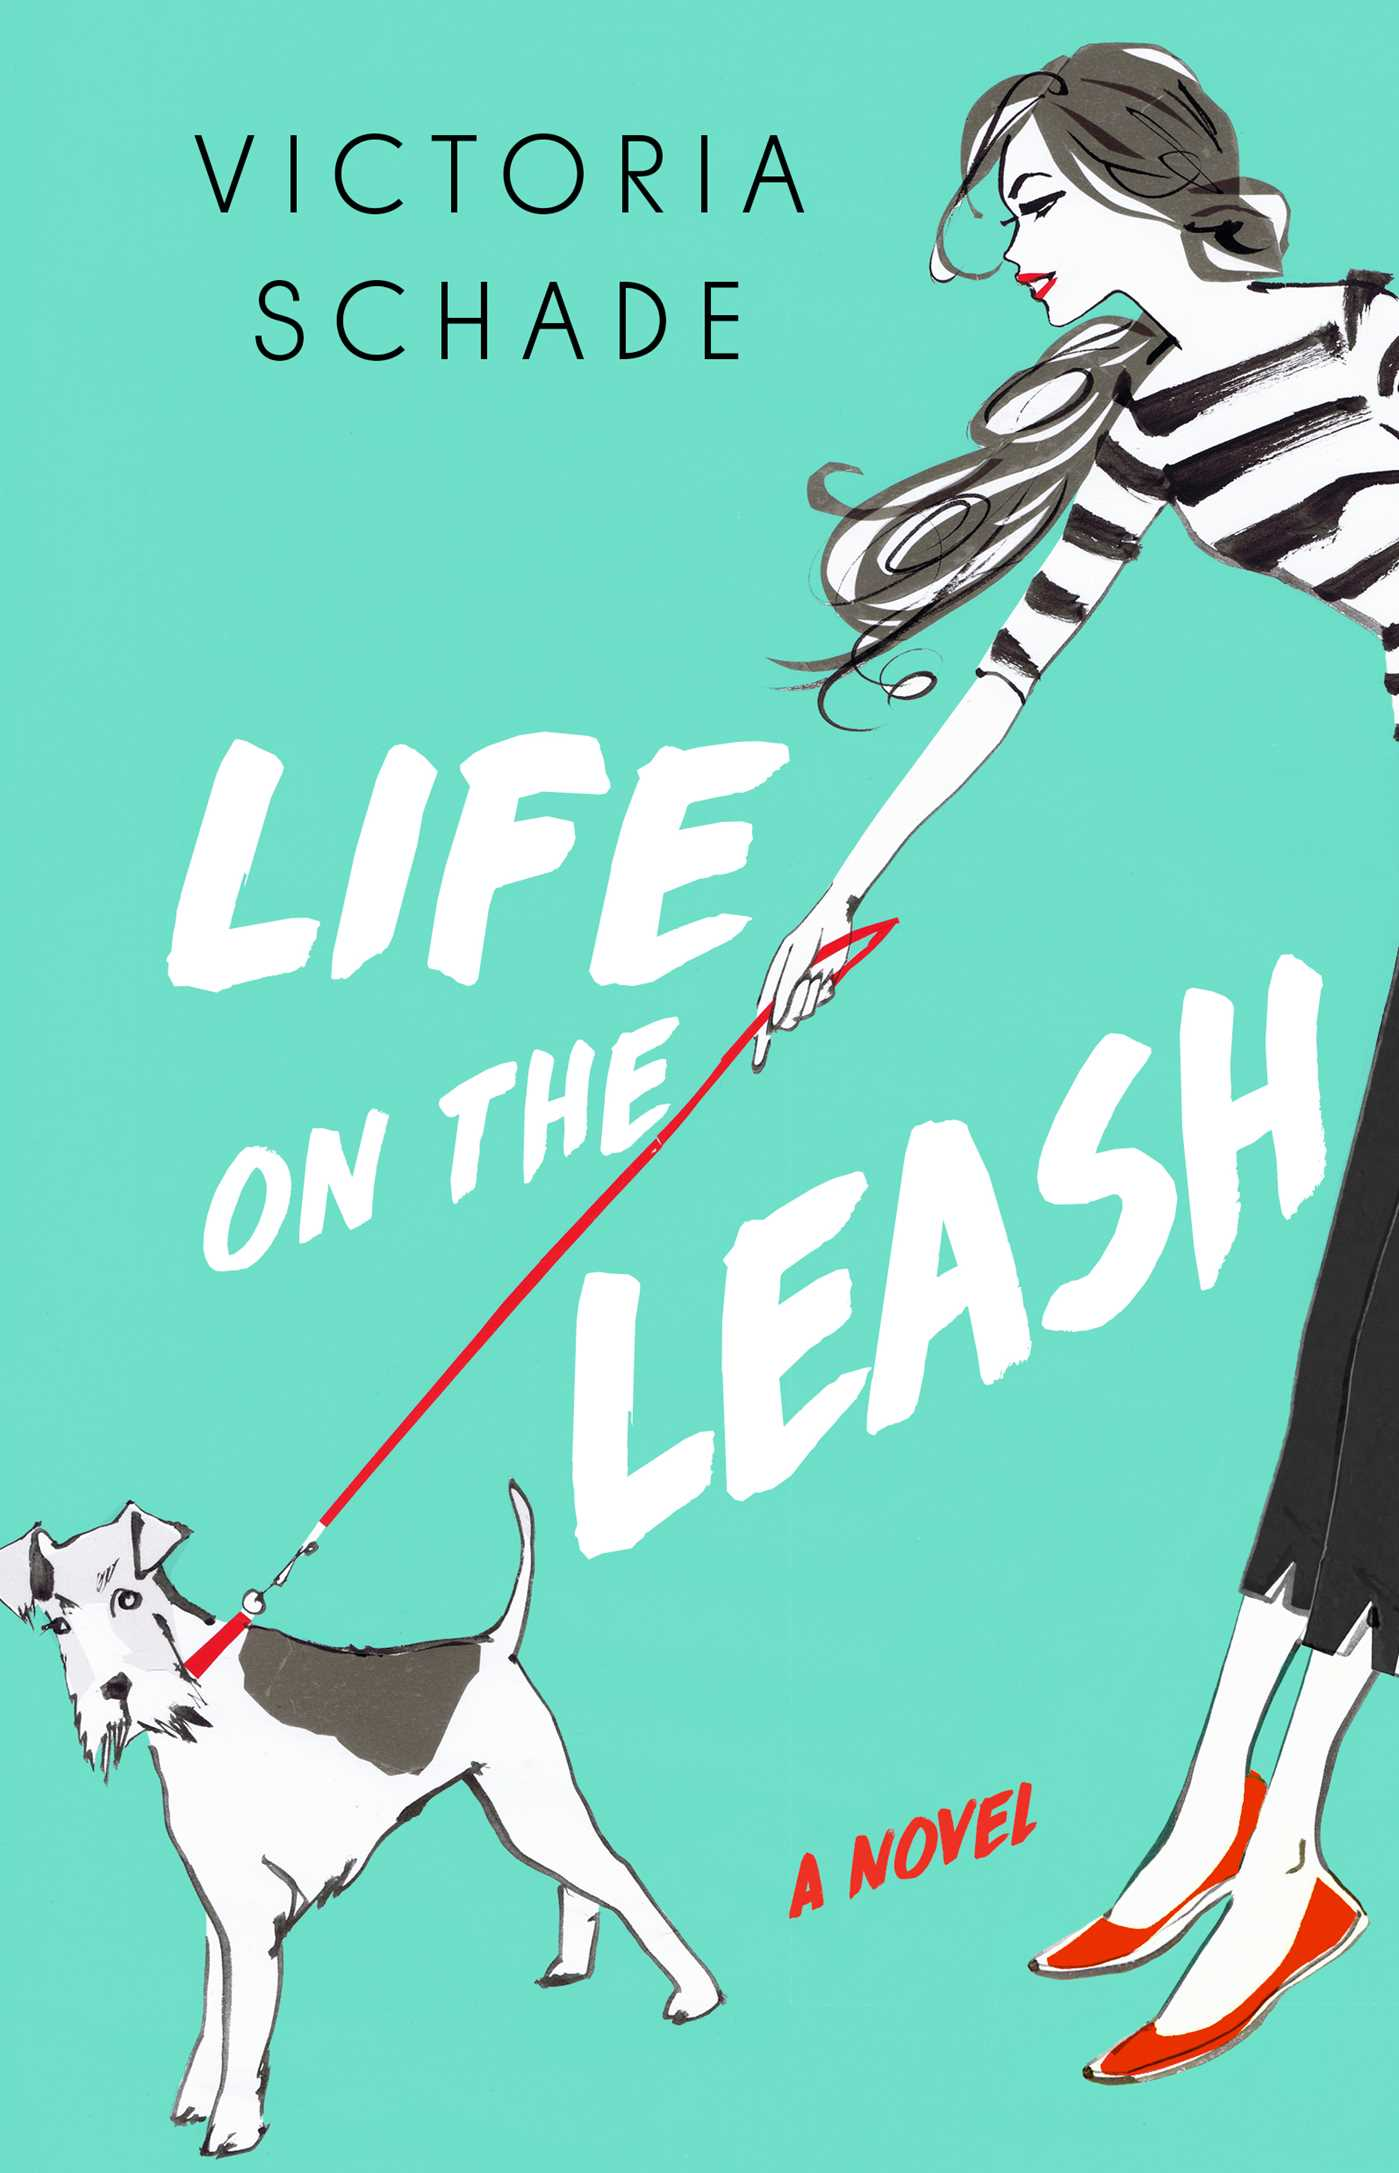 Life on a Leash by Victoria Schade